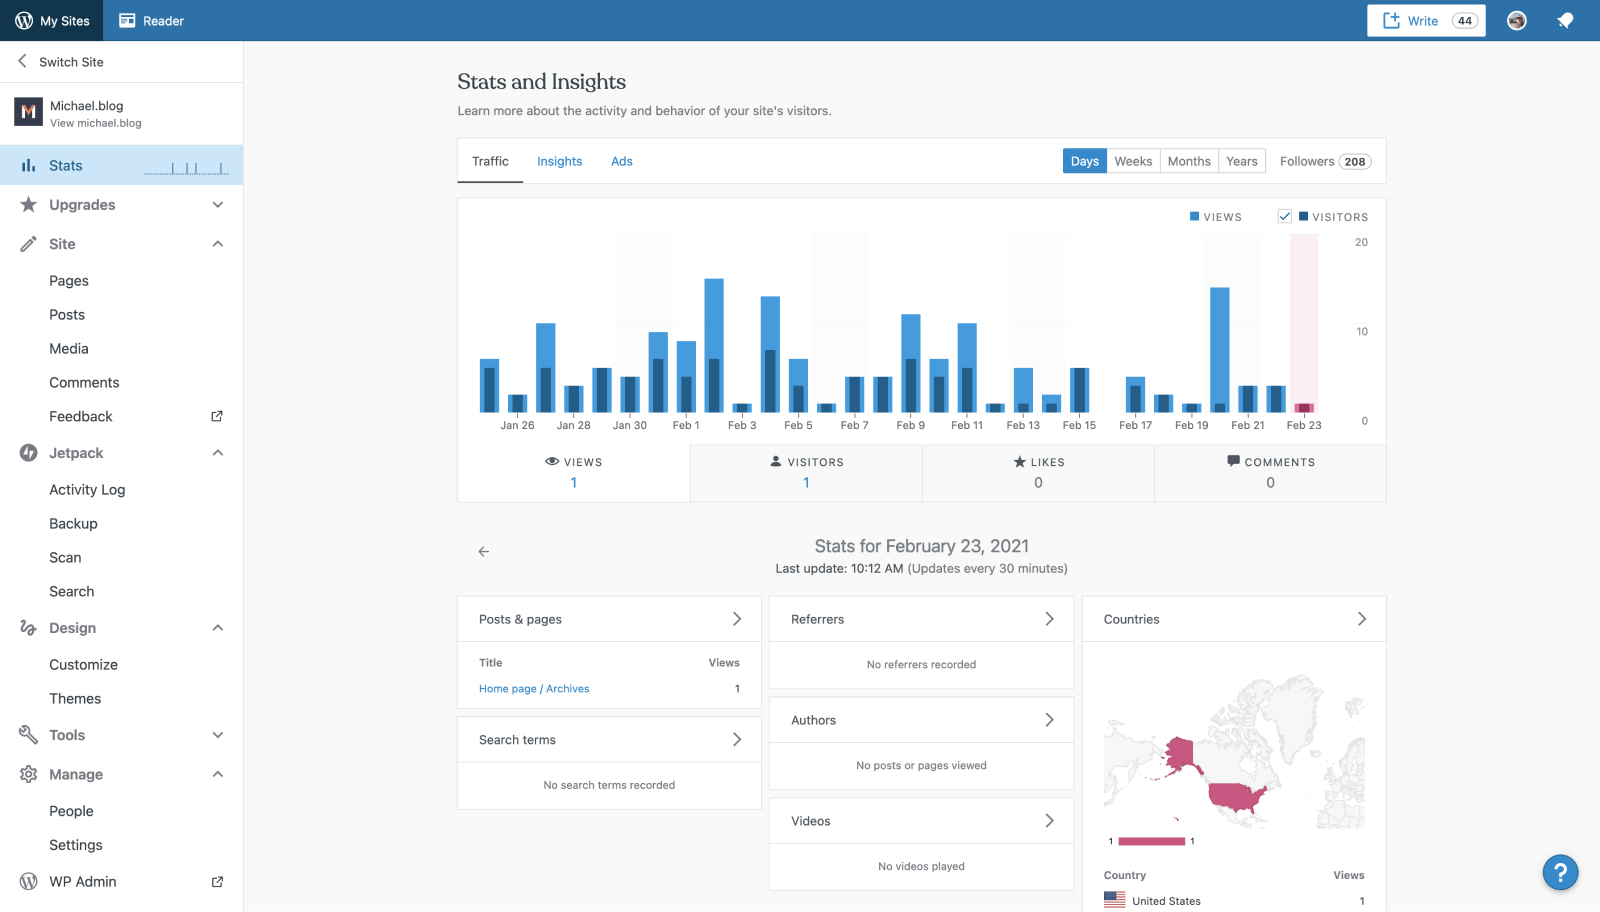 WordPress.com's dashboard showing stats and insights